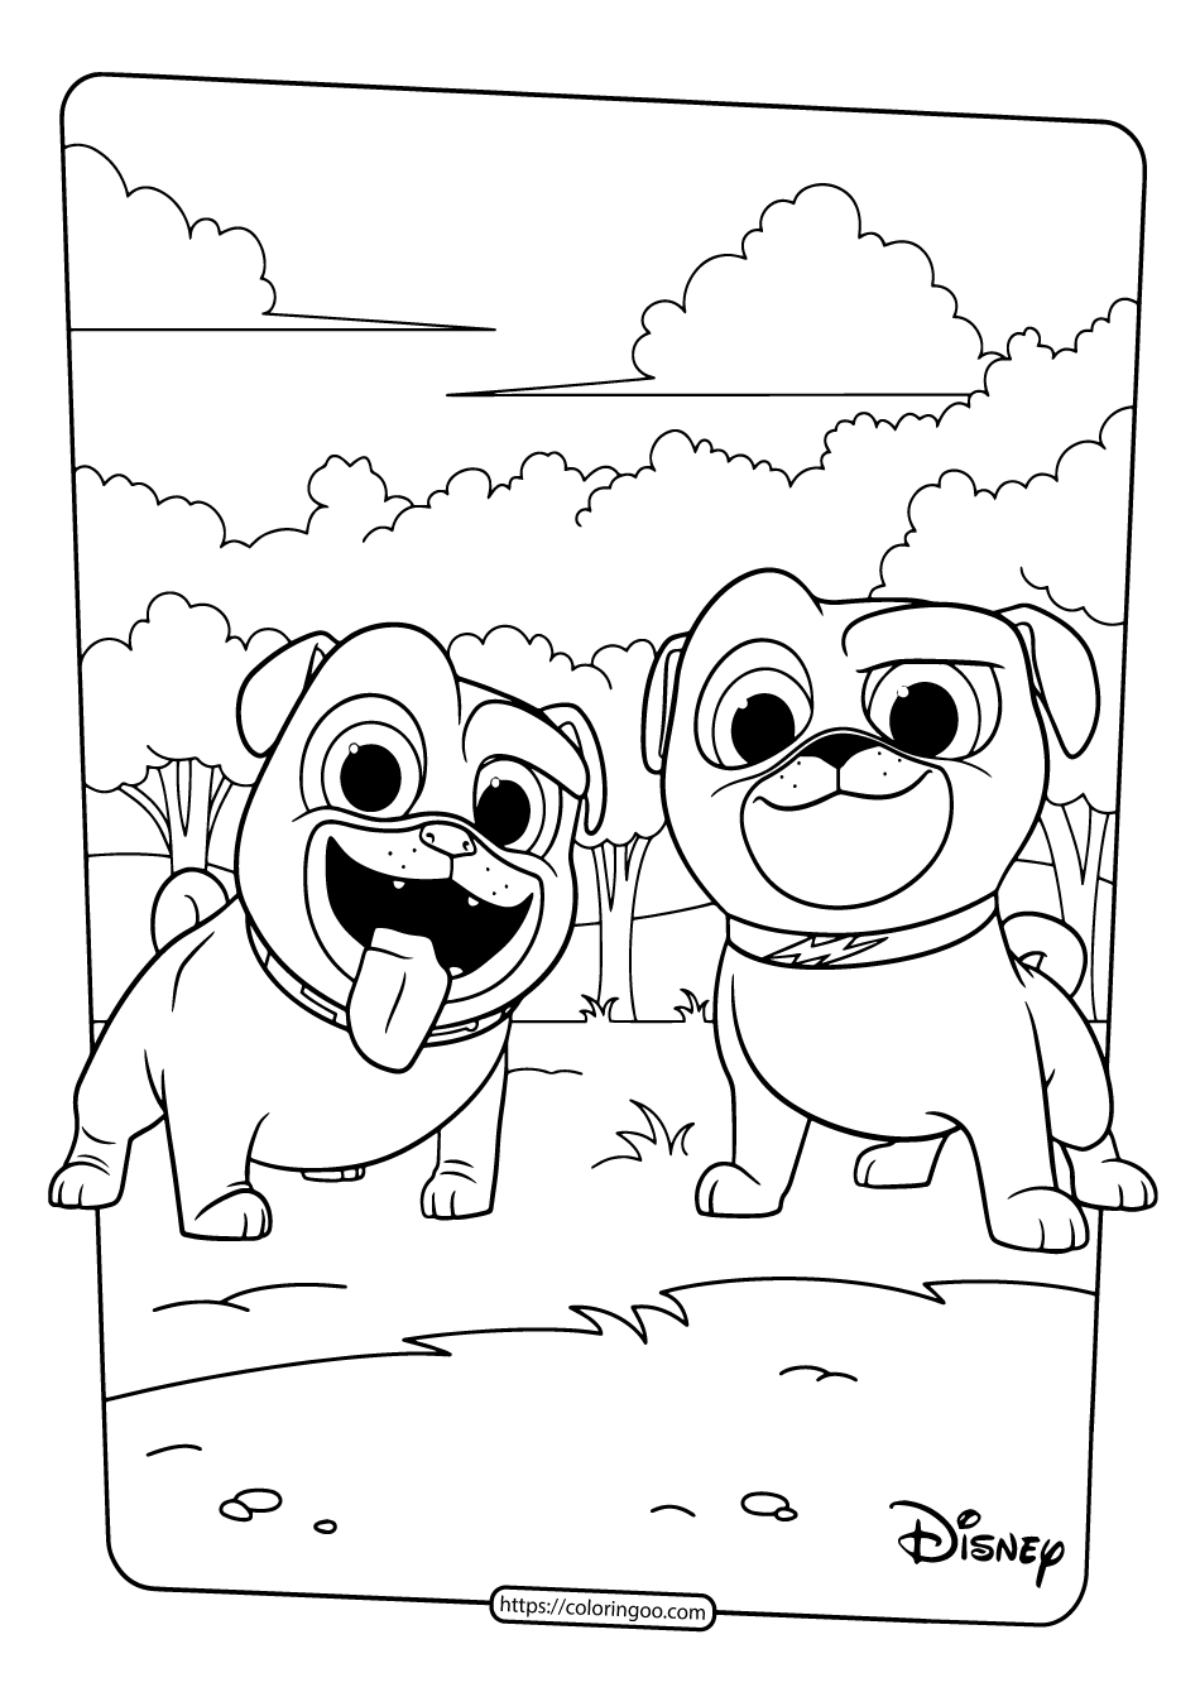 Printable Puppy Dog Pals Coloring Book Pages 01